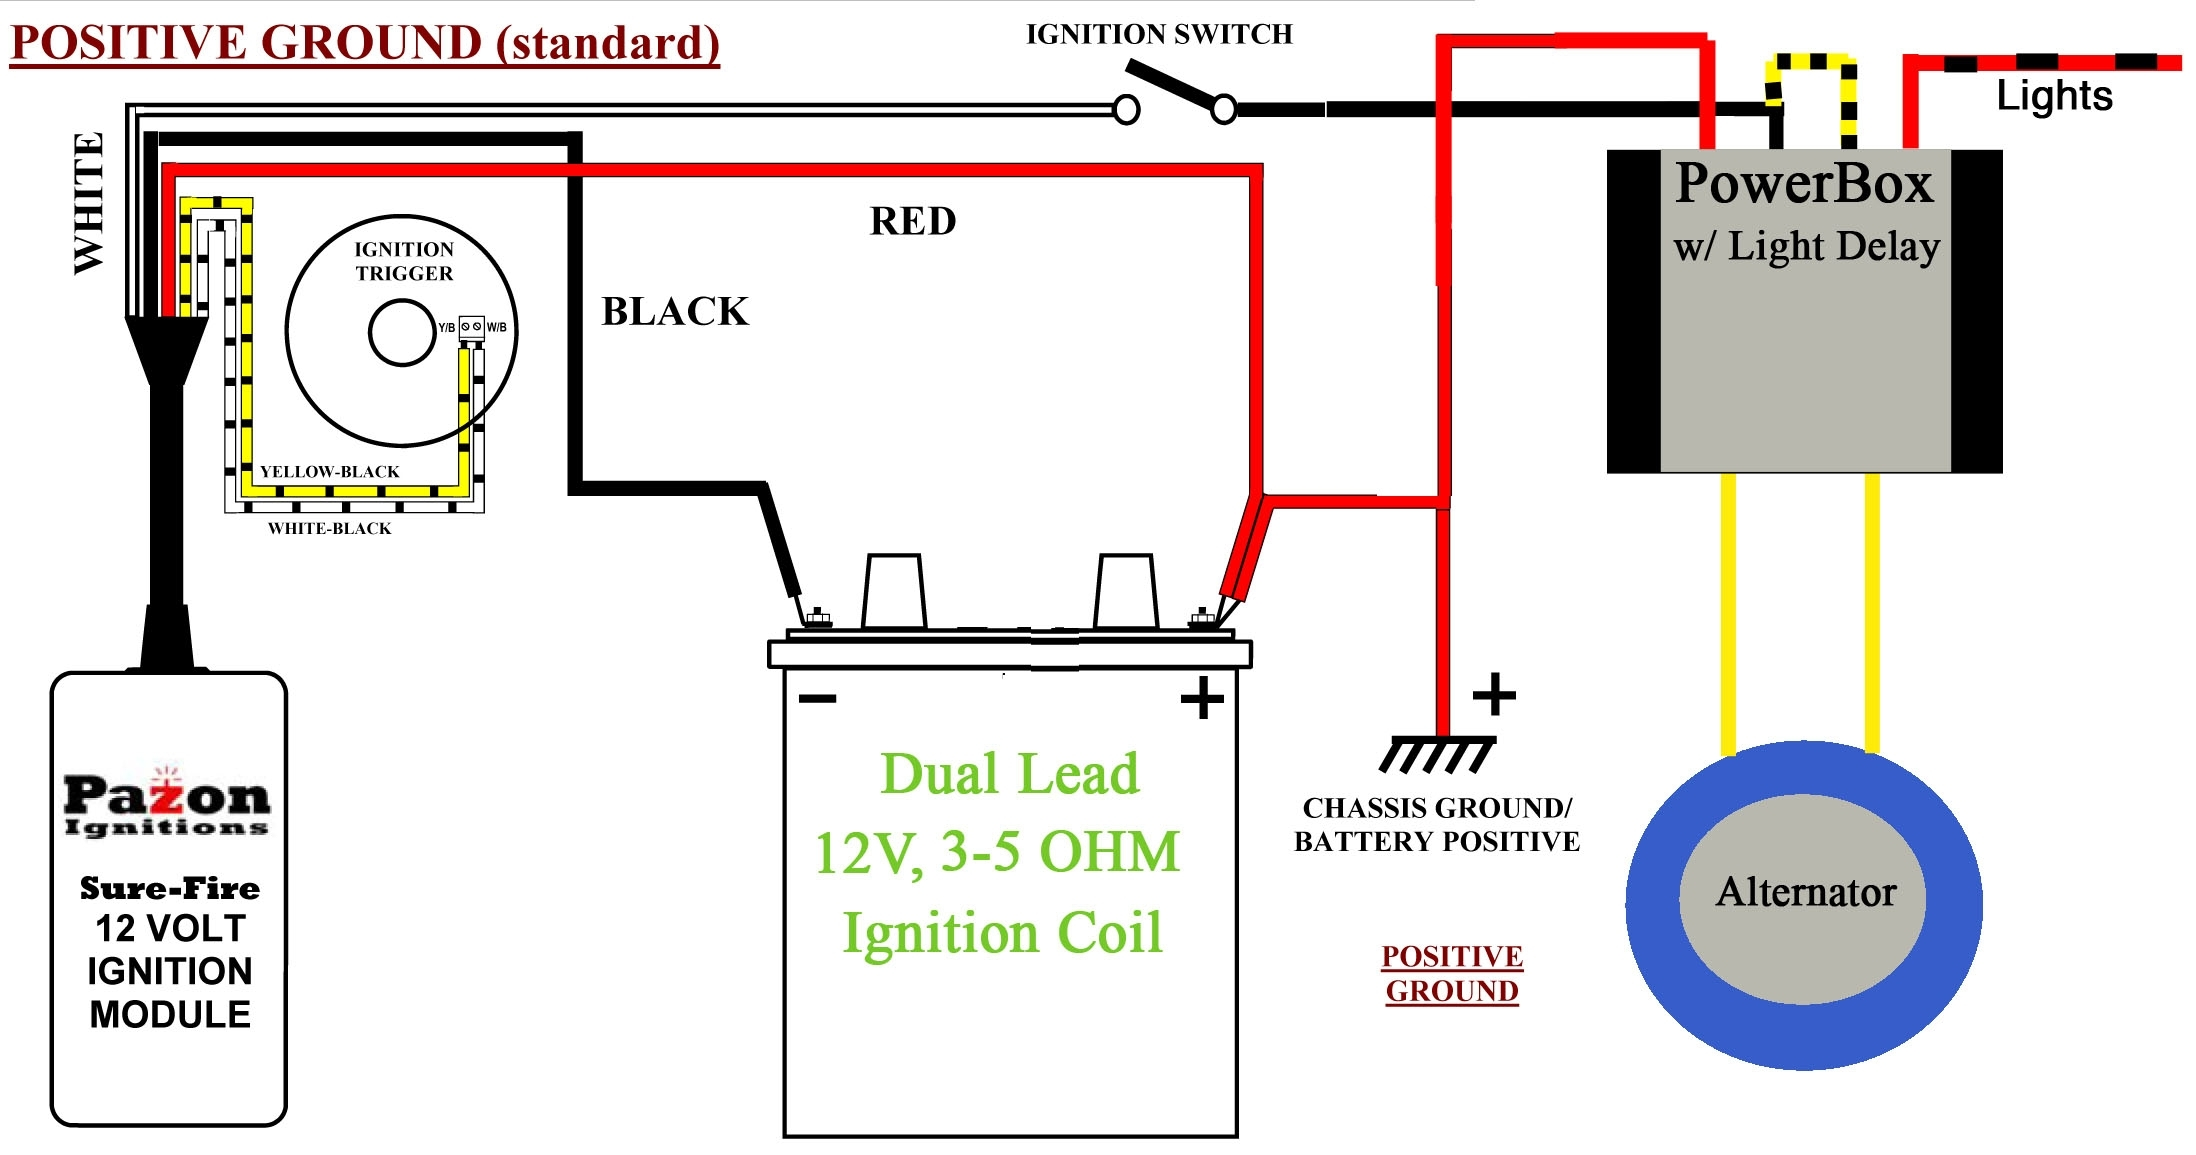 wiring diagram britbike forum regarding 6 volt positive ground wiring diagram 6 volt battery wiring diagram dolgular com  at gsmportal.co